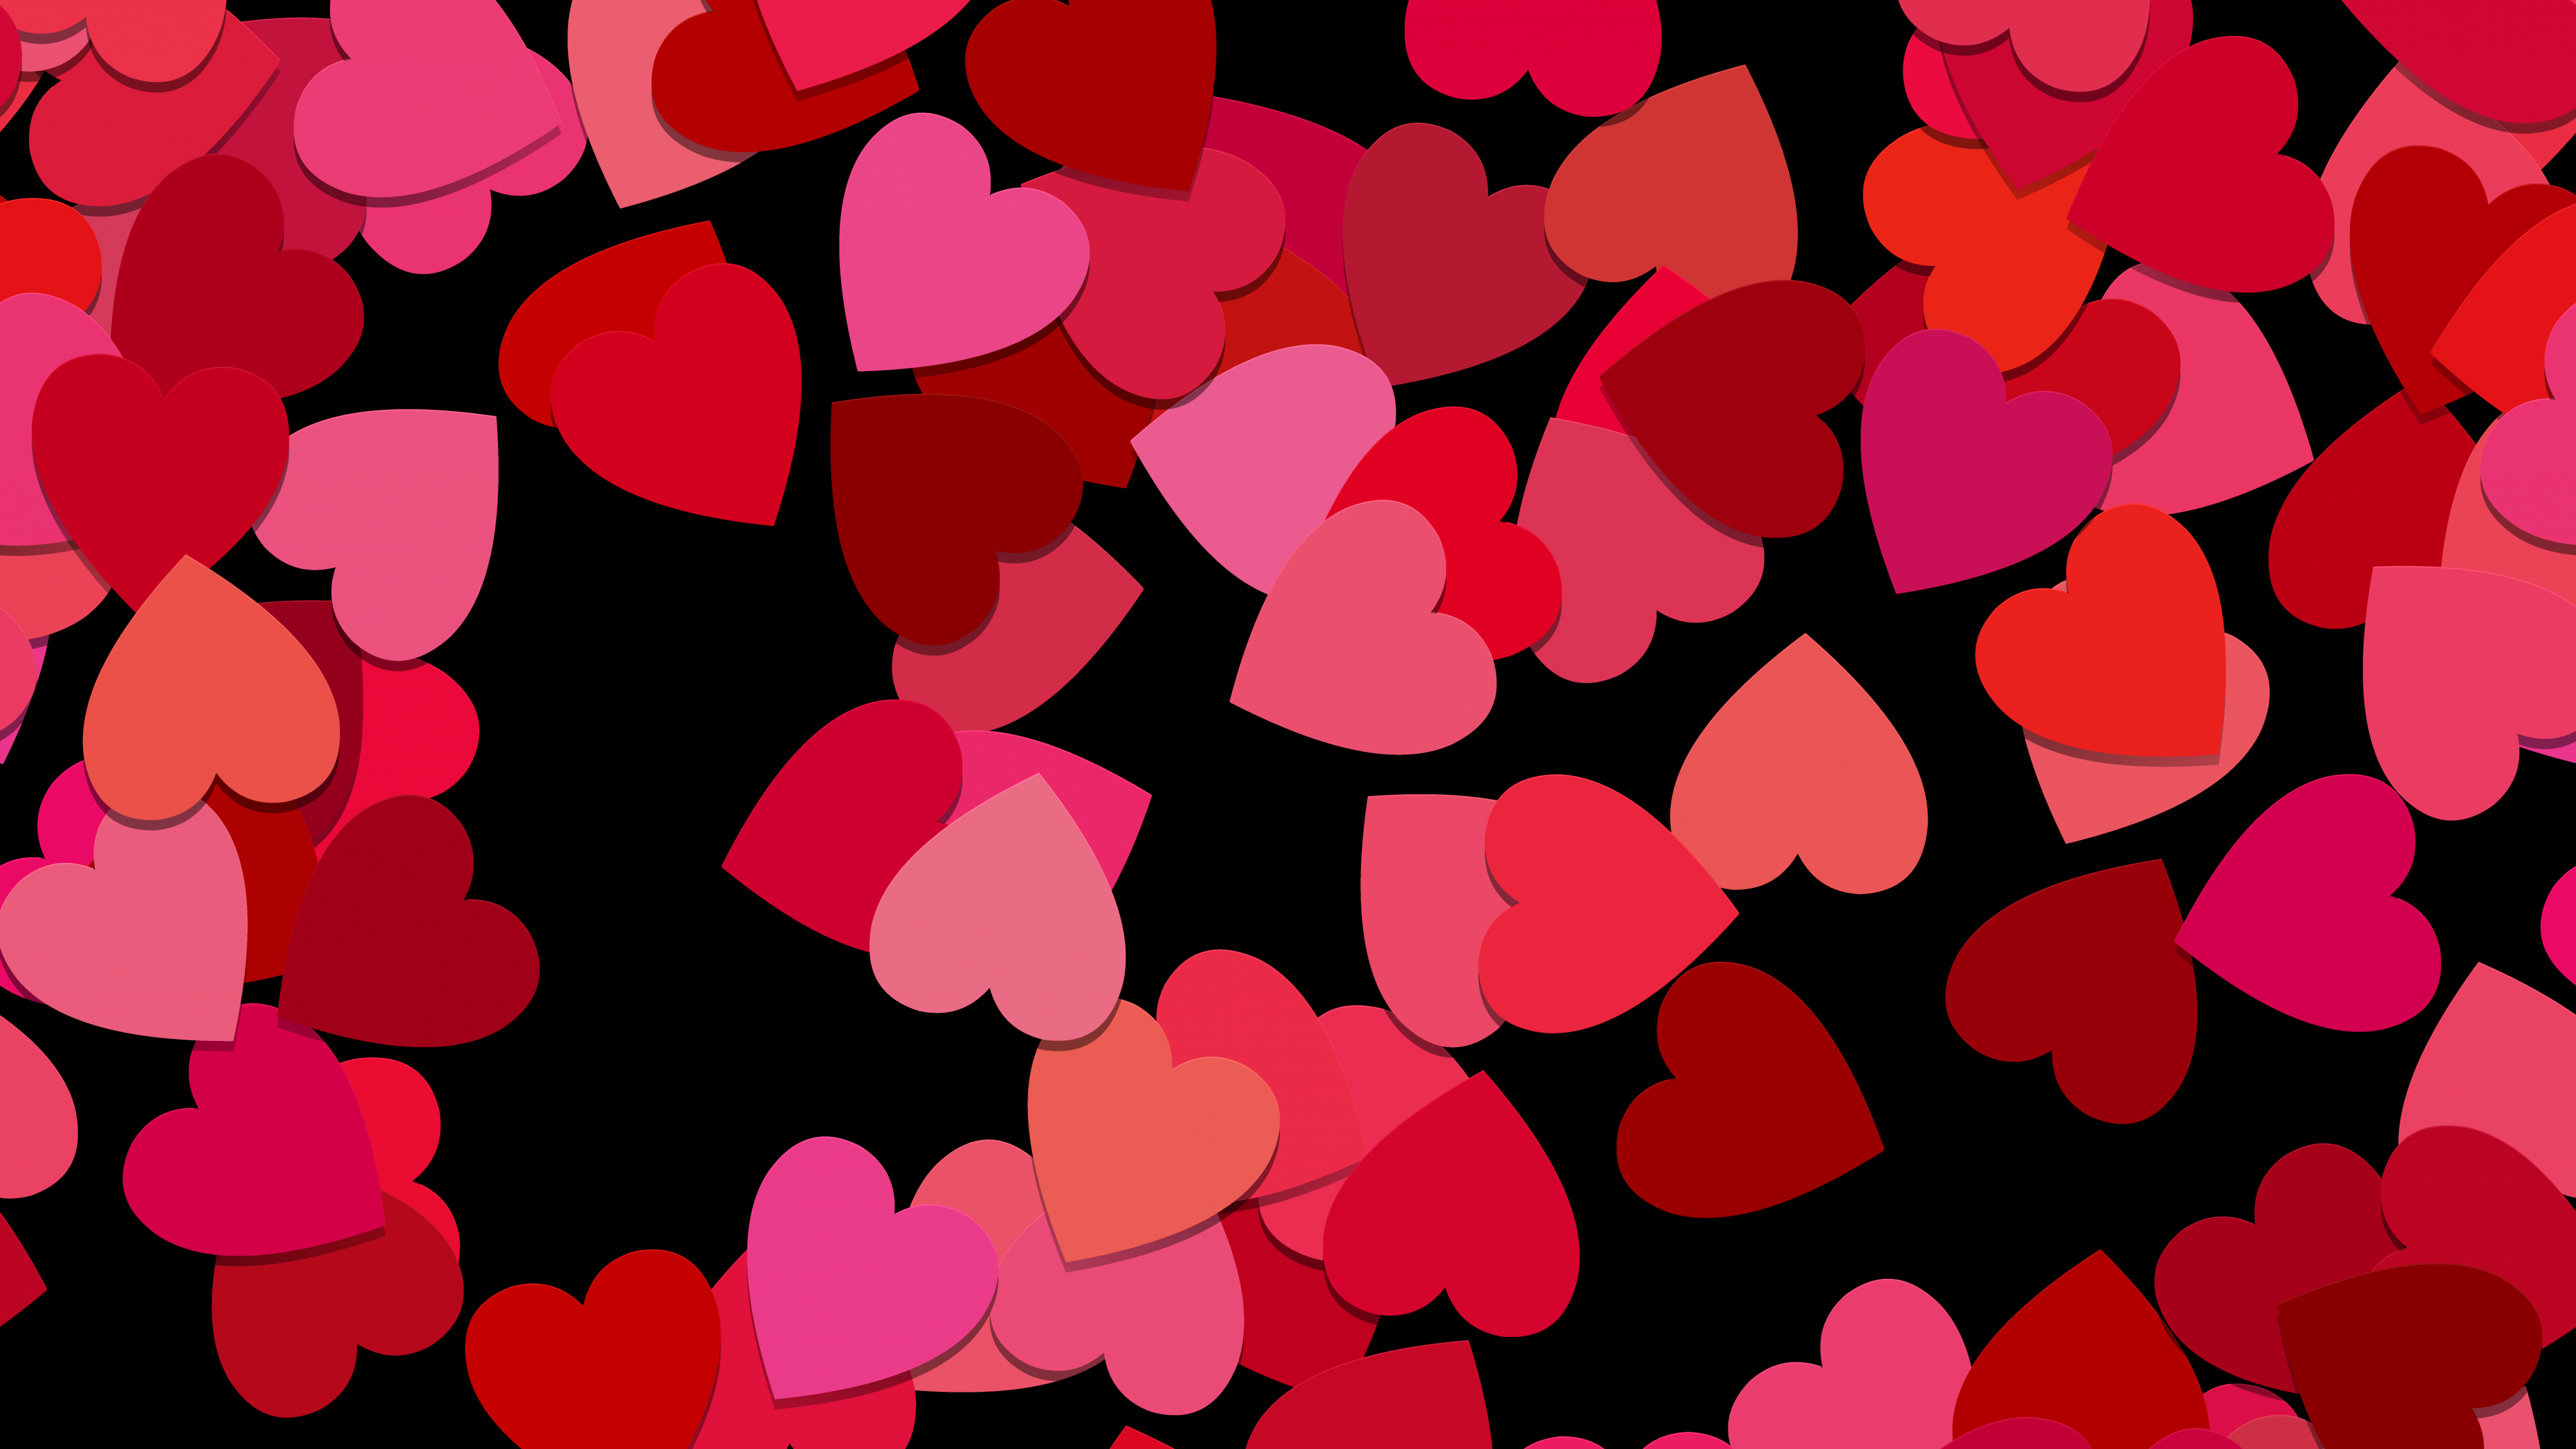 Love Hearts Wallpaper 4k Red Hearts Girly Backgrounds 5k Love 1778